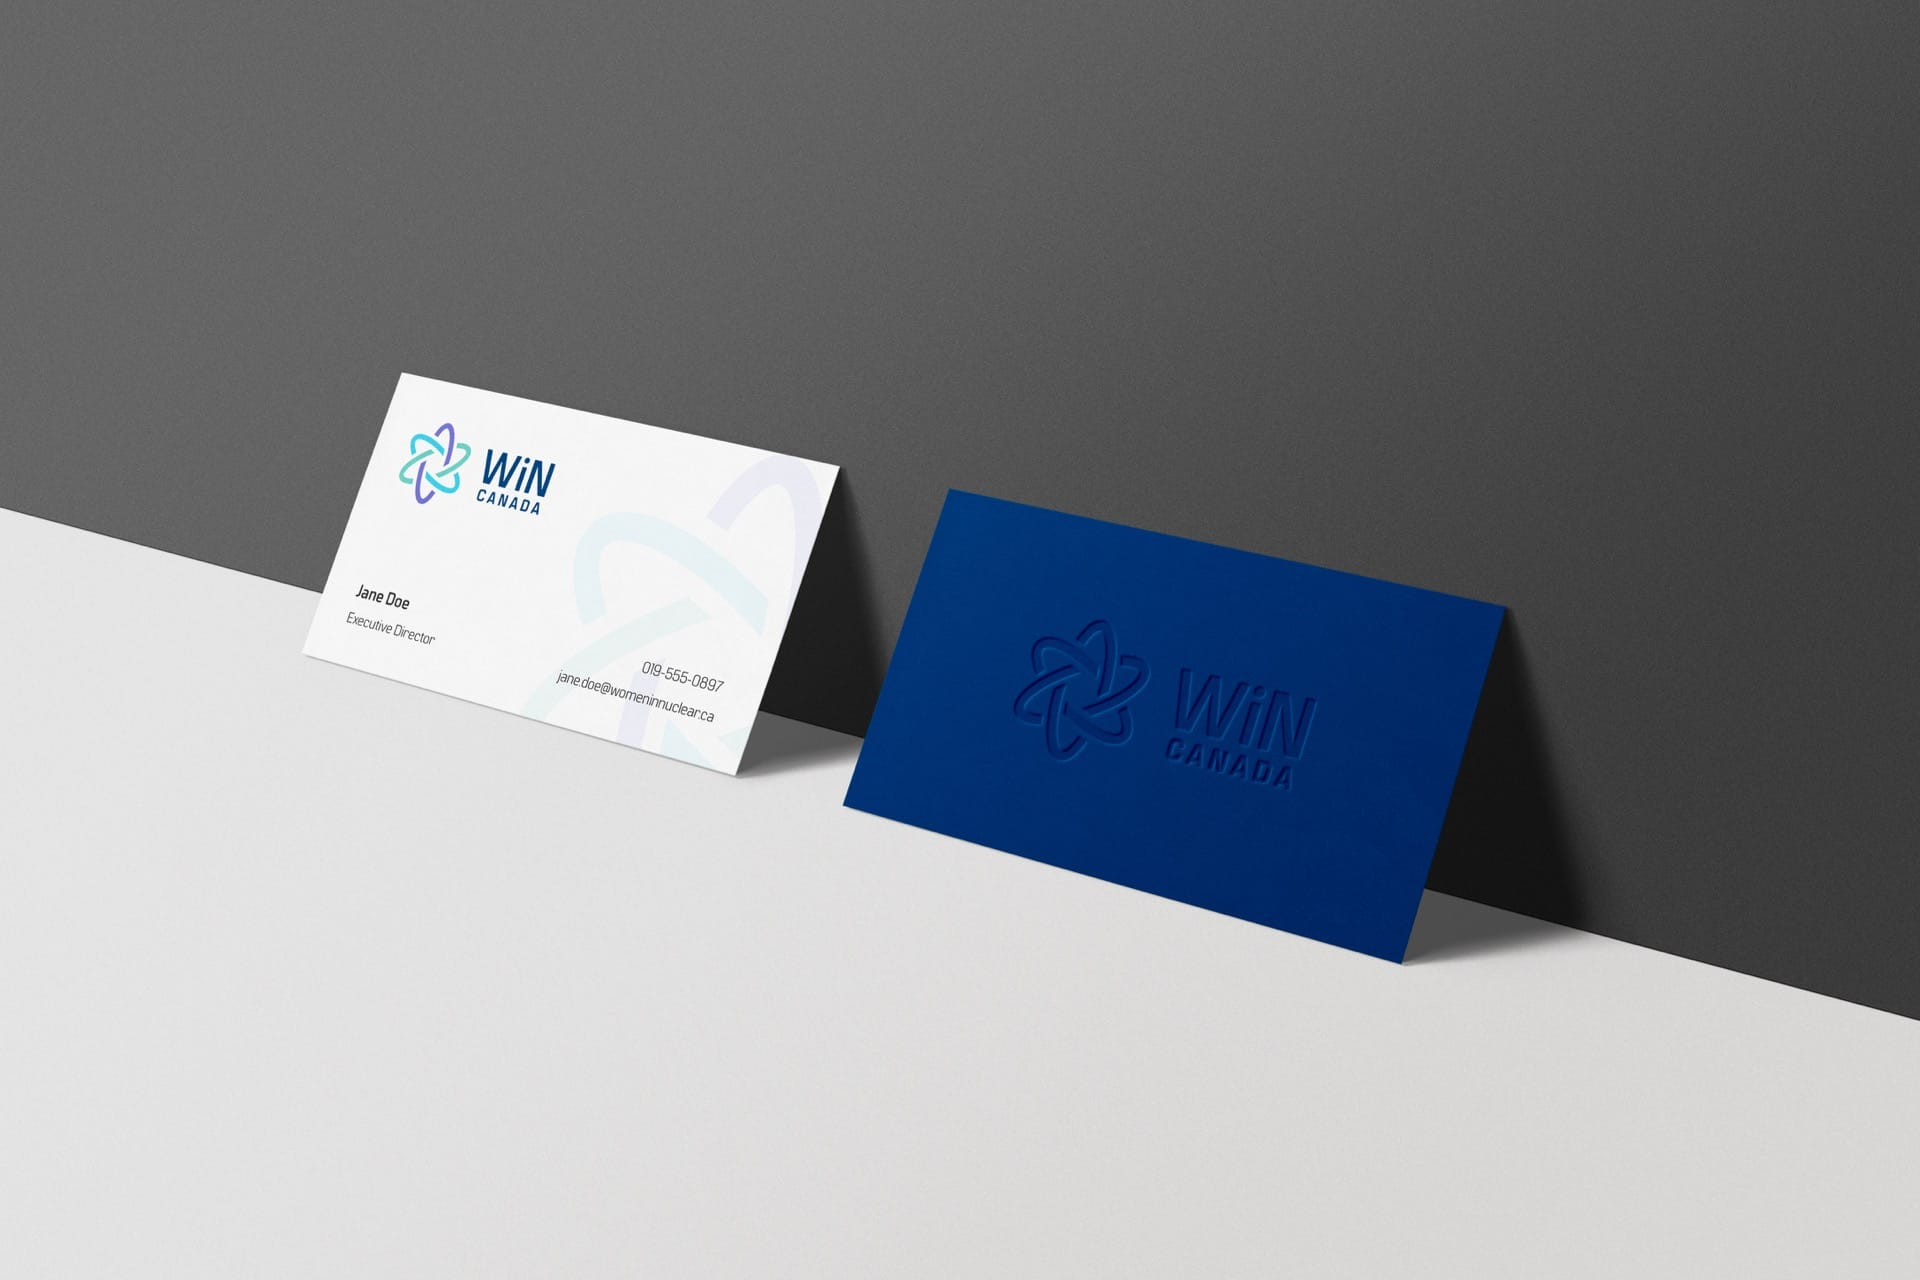 WiN Canada - Business Card